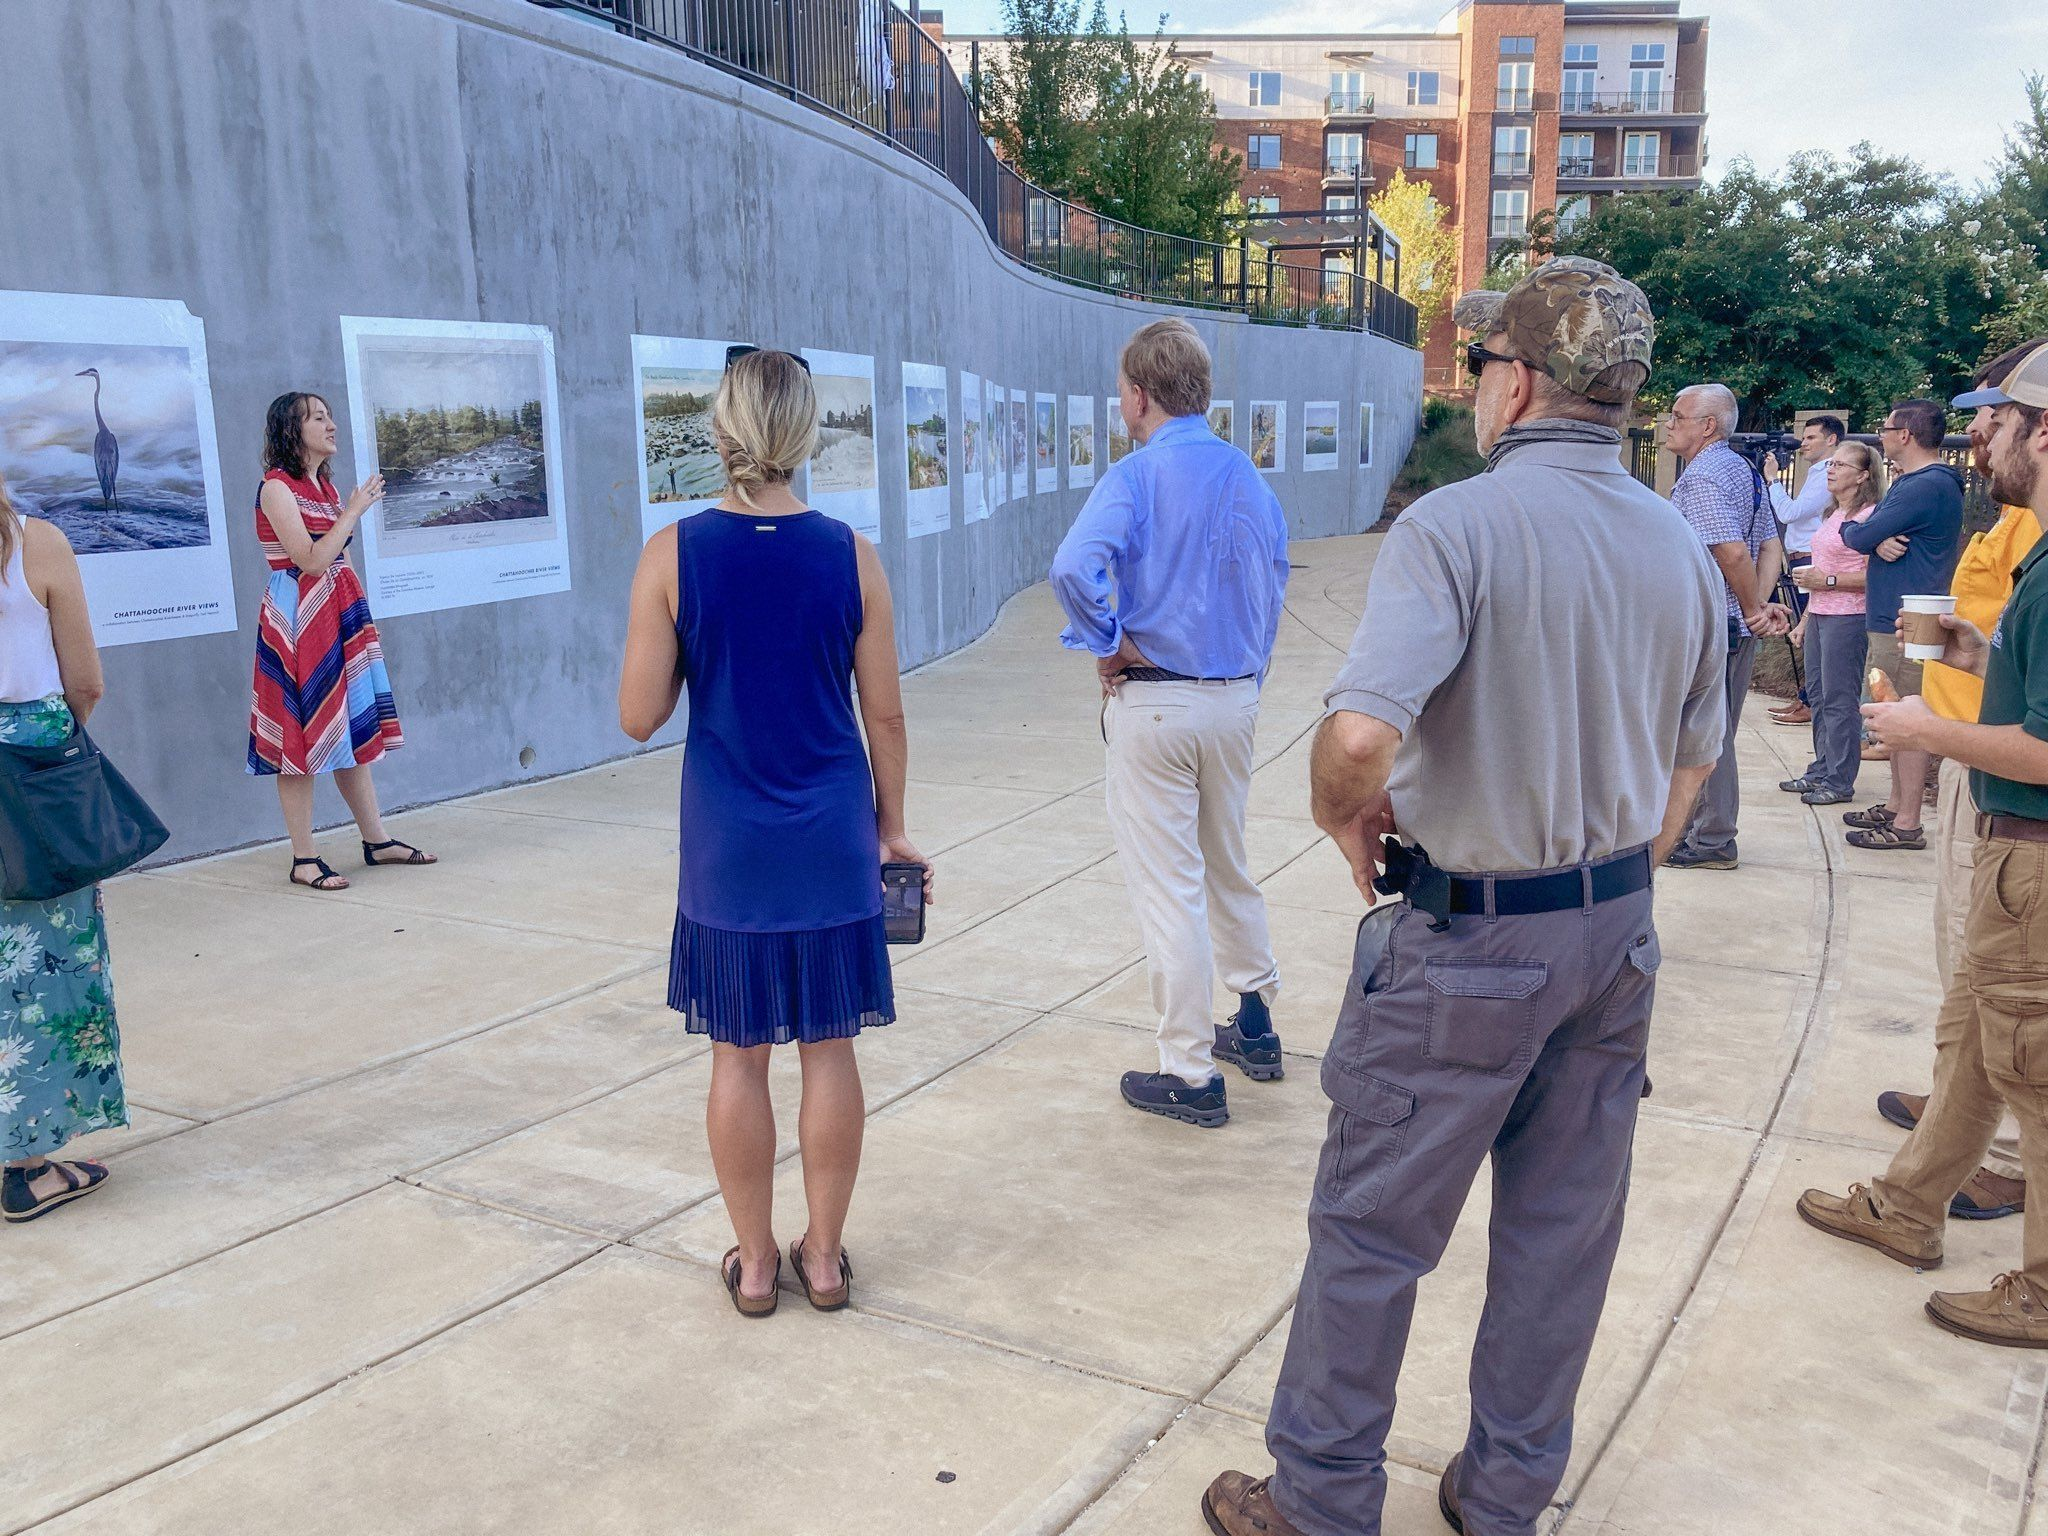 Public art exhibit unveiled on the Columbus Riverwalk, highlighting the history of the Chattahoochee River